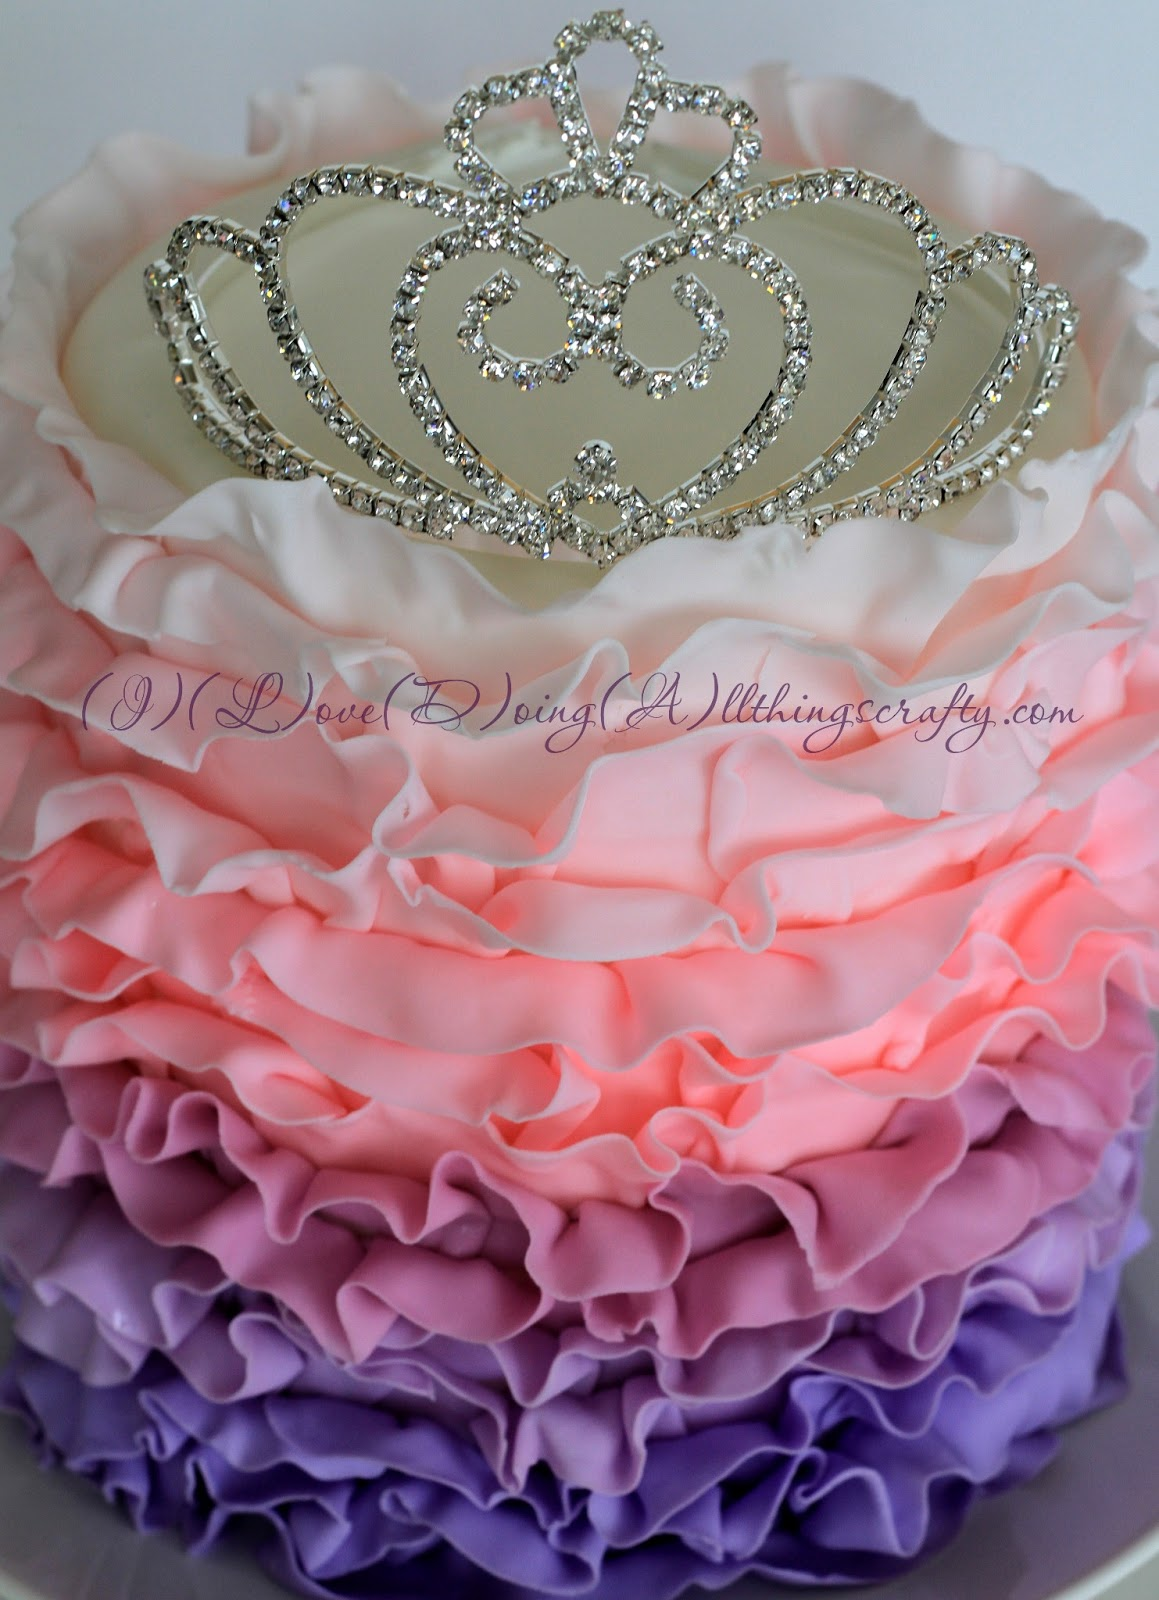 I Love Doing All Things Crafty Ombr Princess Cake